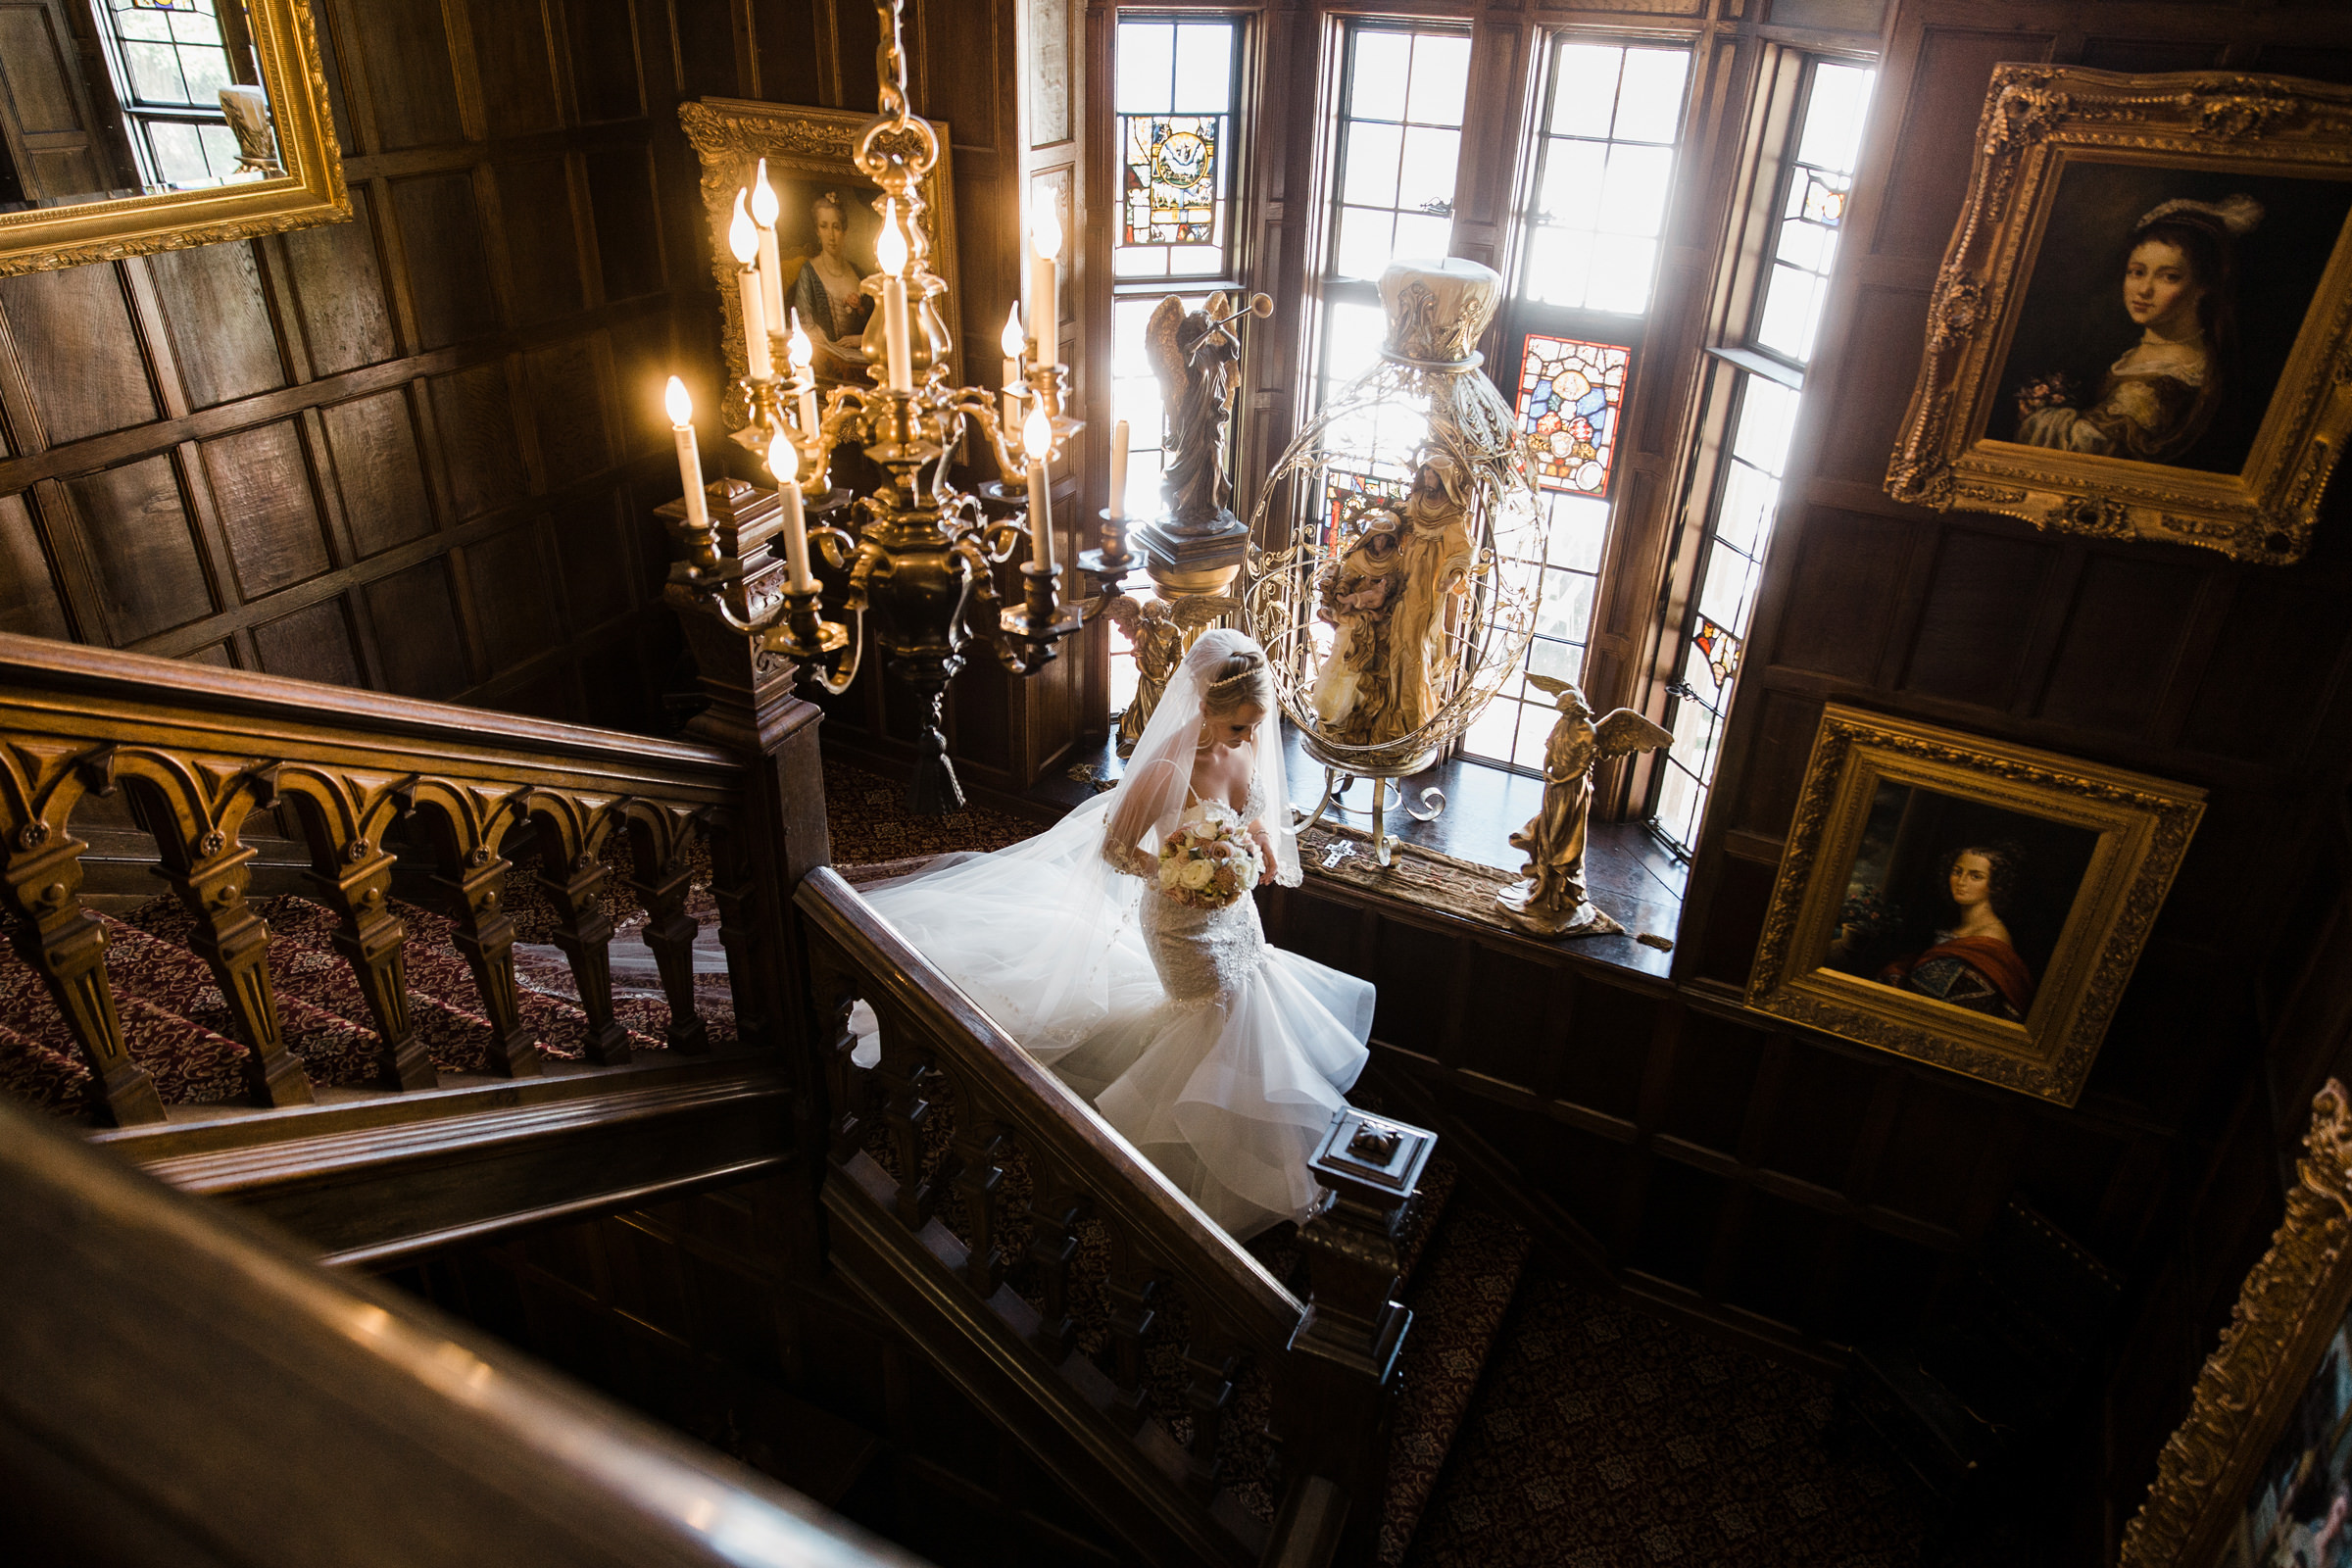 bride-in-mermaid-dress-and-long-veil-descends-mansion-stairway-stephanie-cristalli-photography